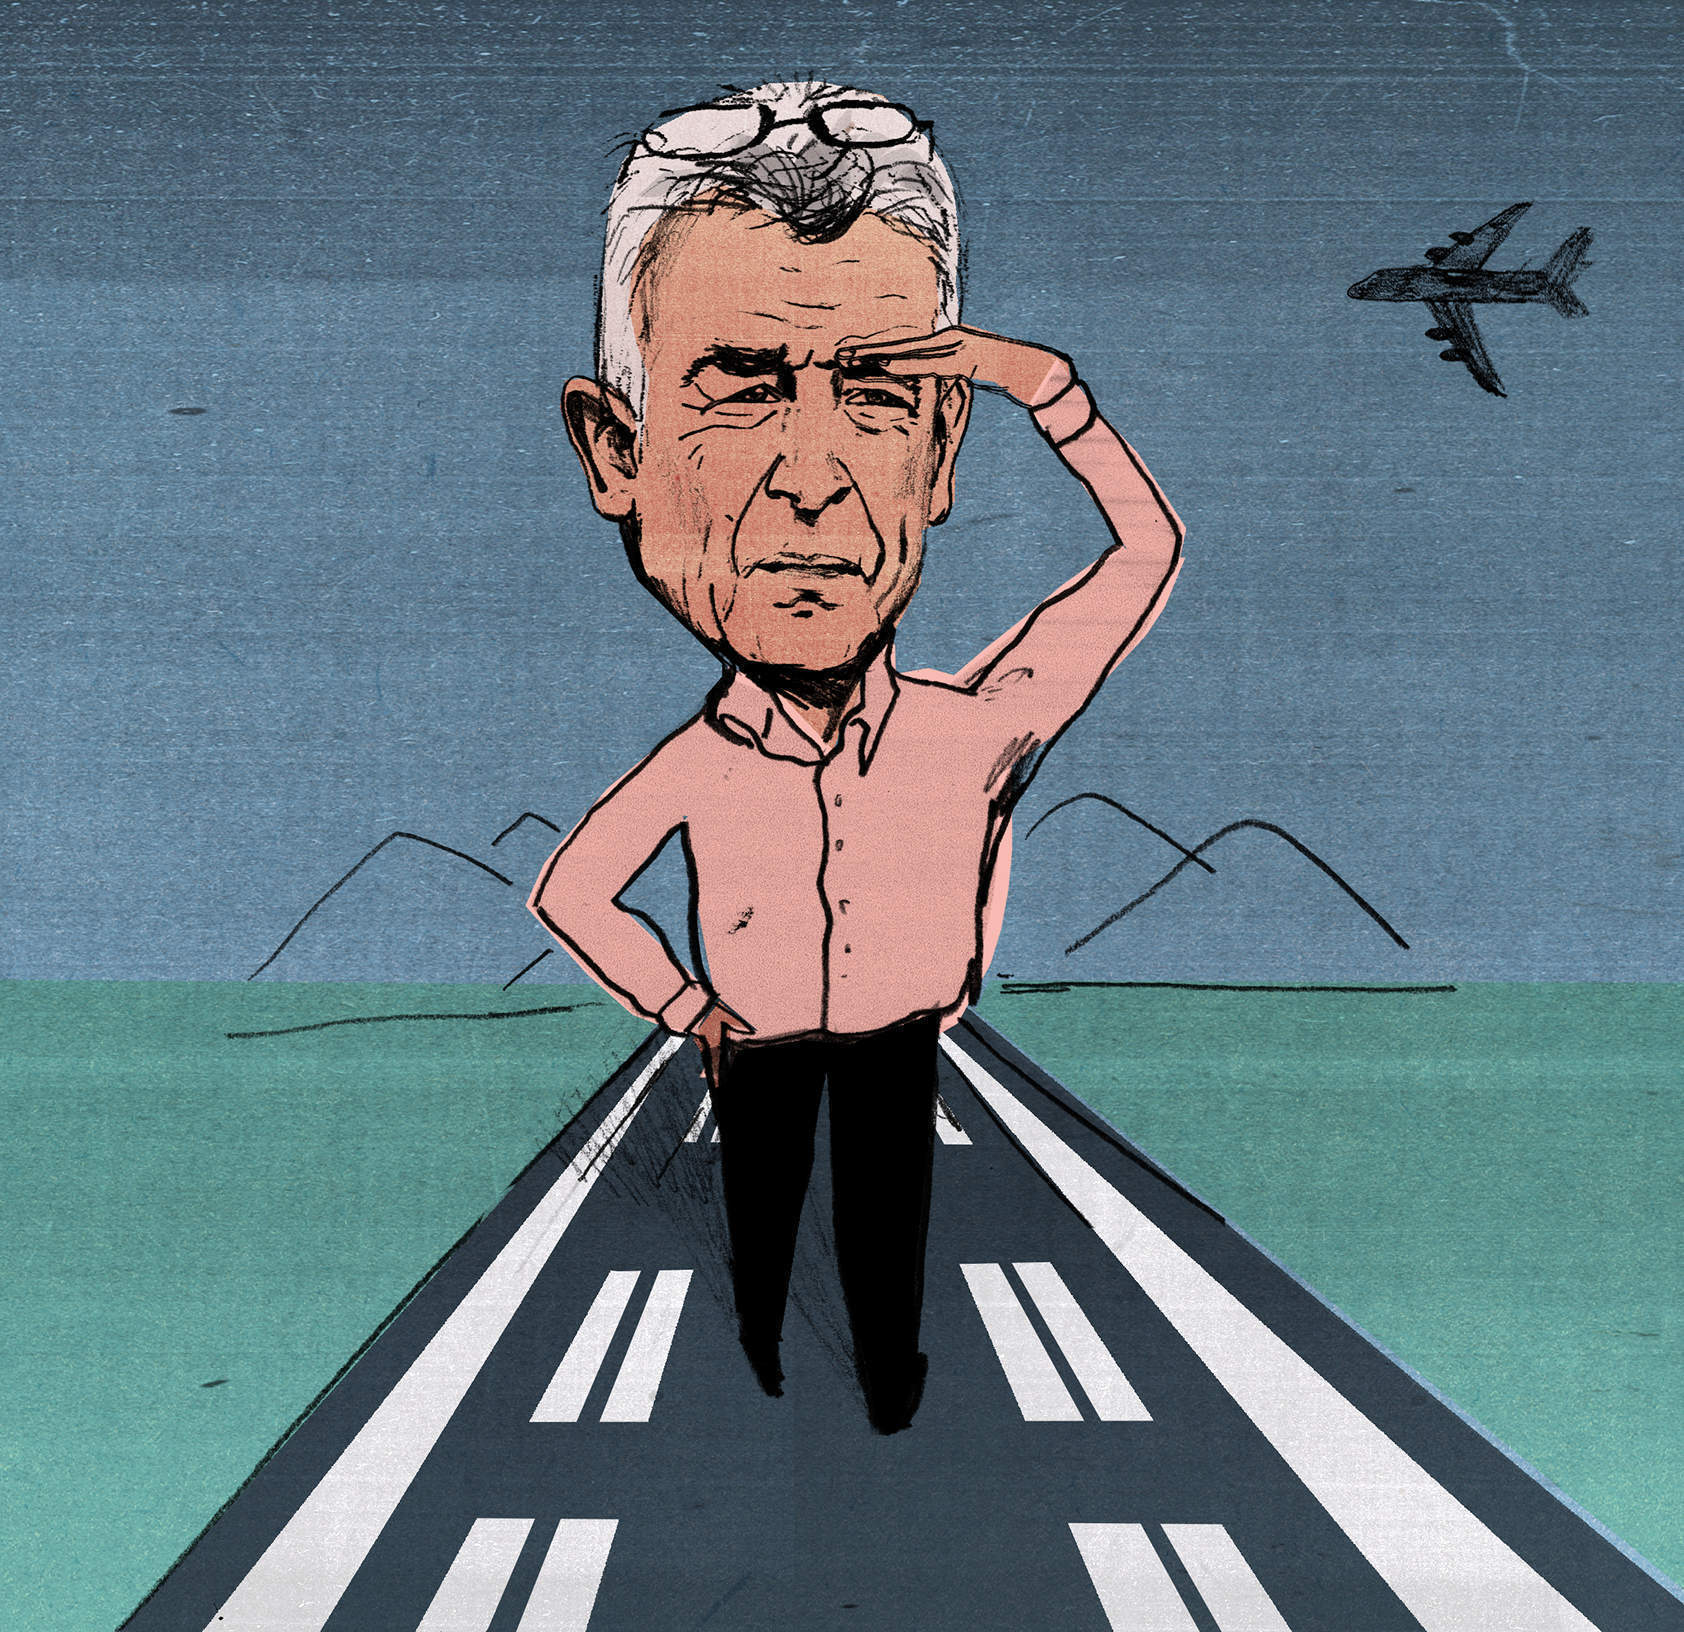 Ryanair comes down to earth: the hubris of Michael O'Leary